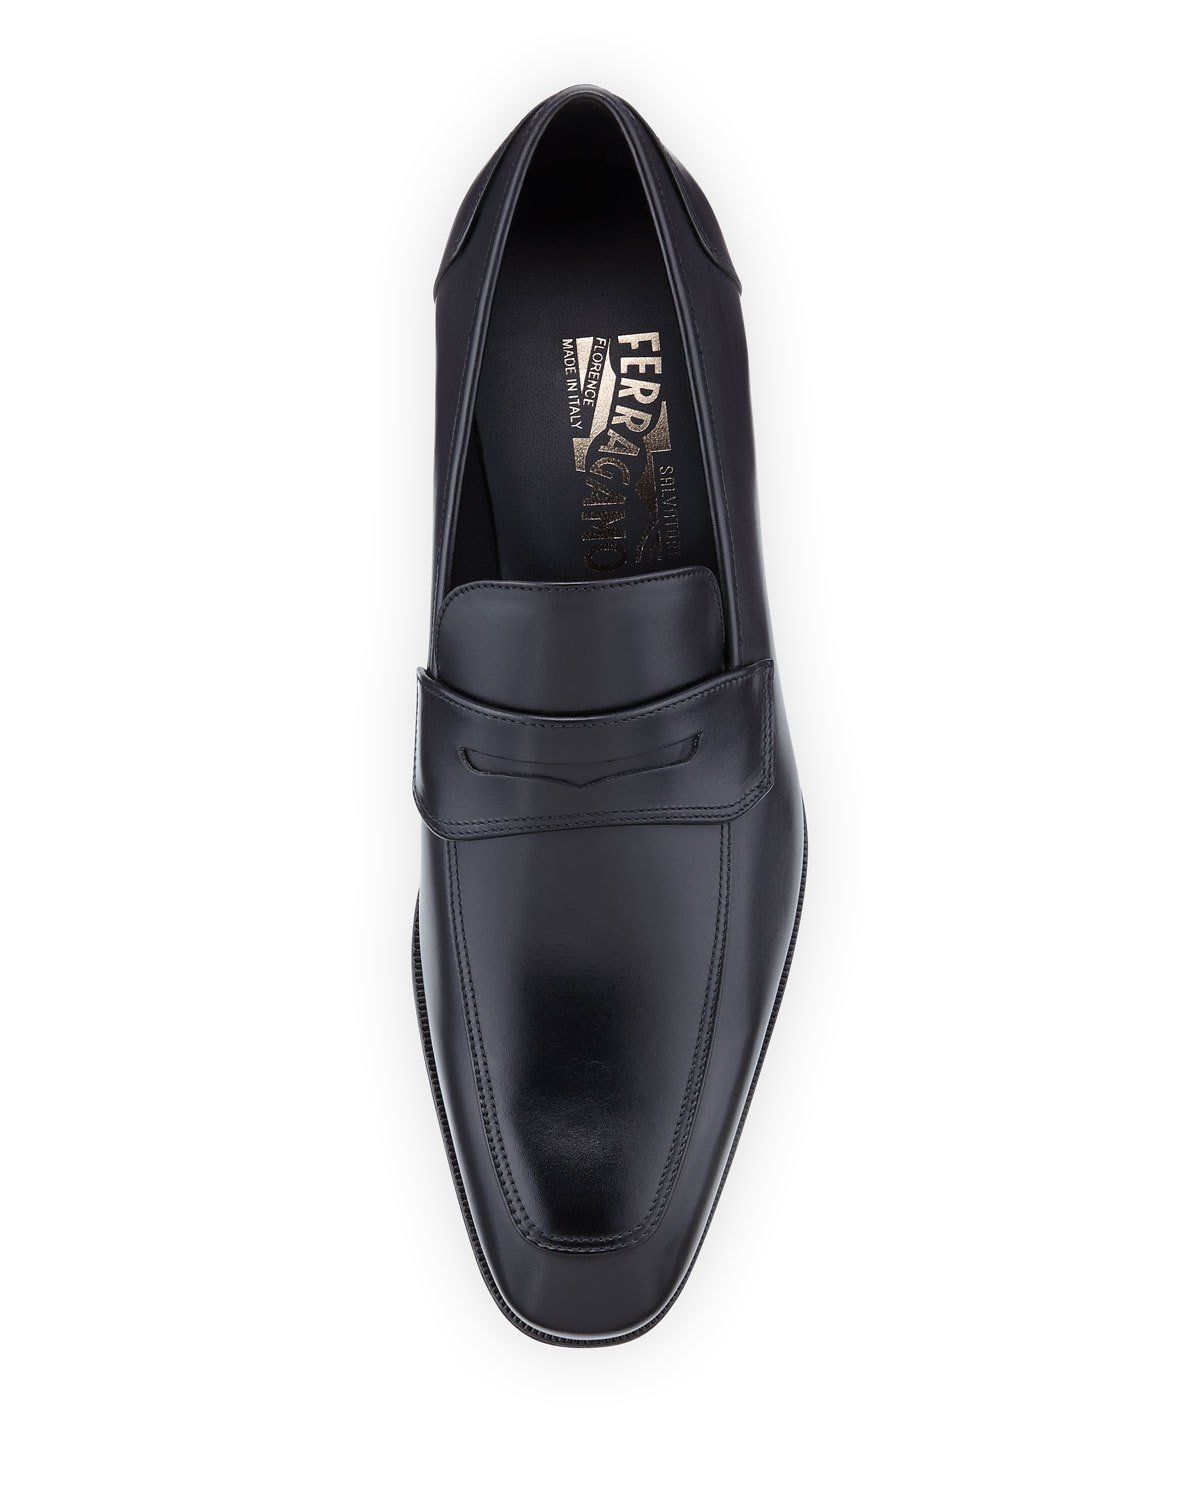 6fb4781d9a5 Salvatore Ferragamo Leather Penny Loafer Penny Loafers